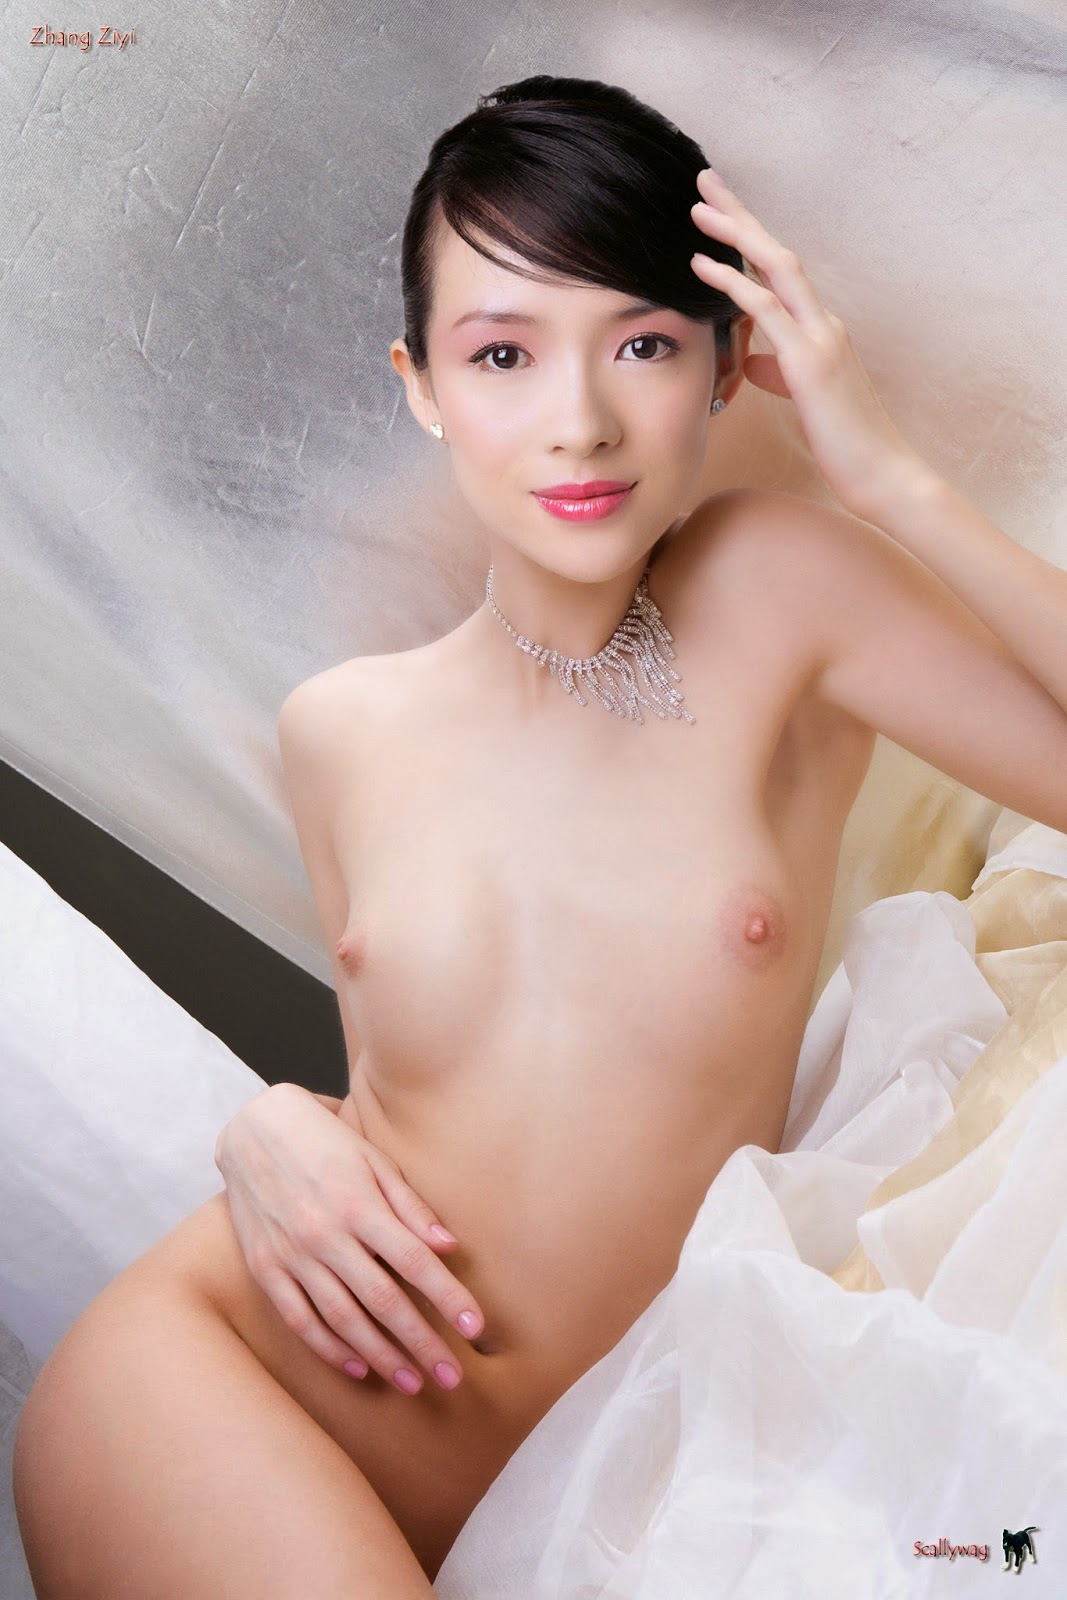 Zhang Ziyi Nude Video 7